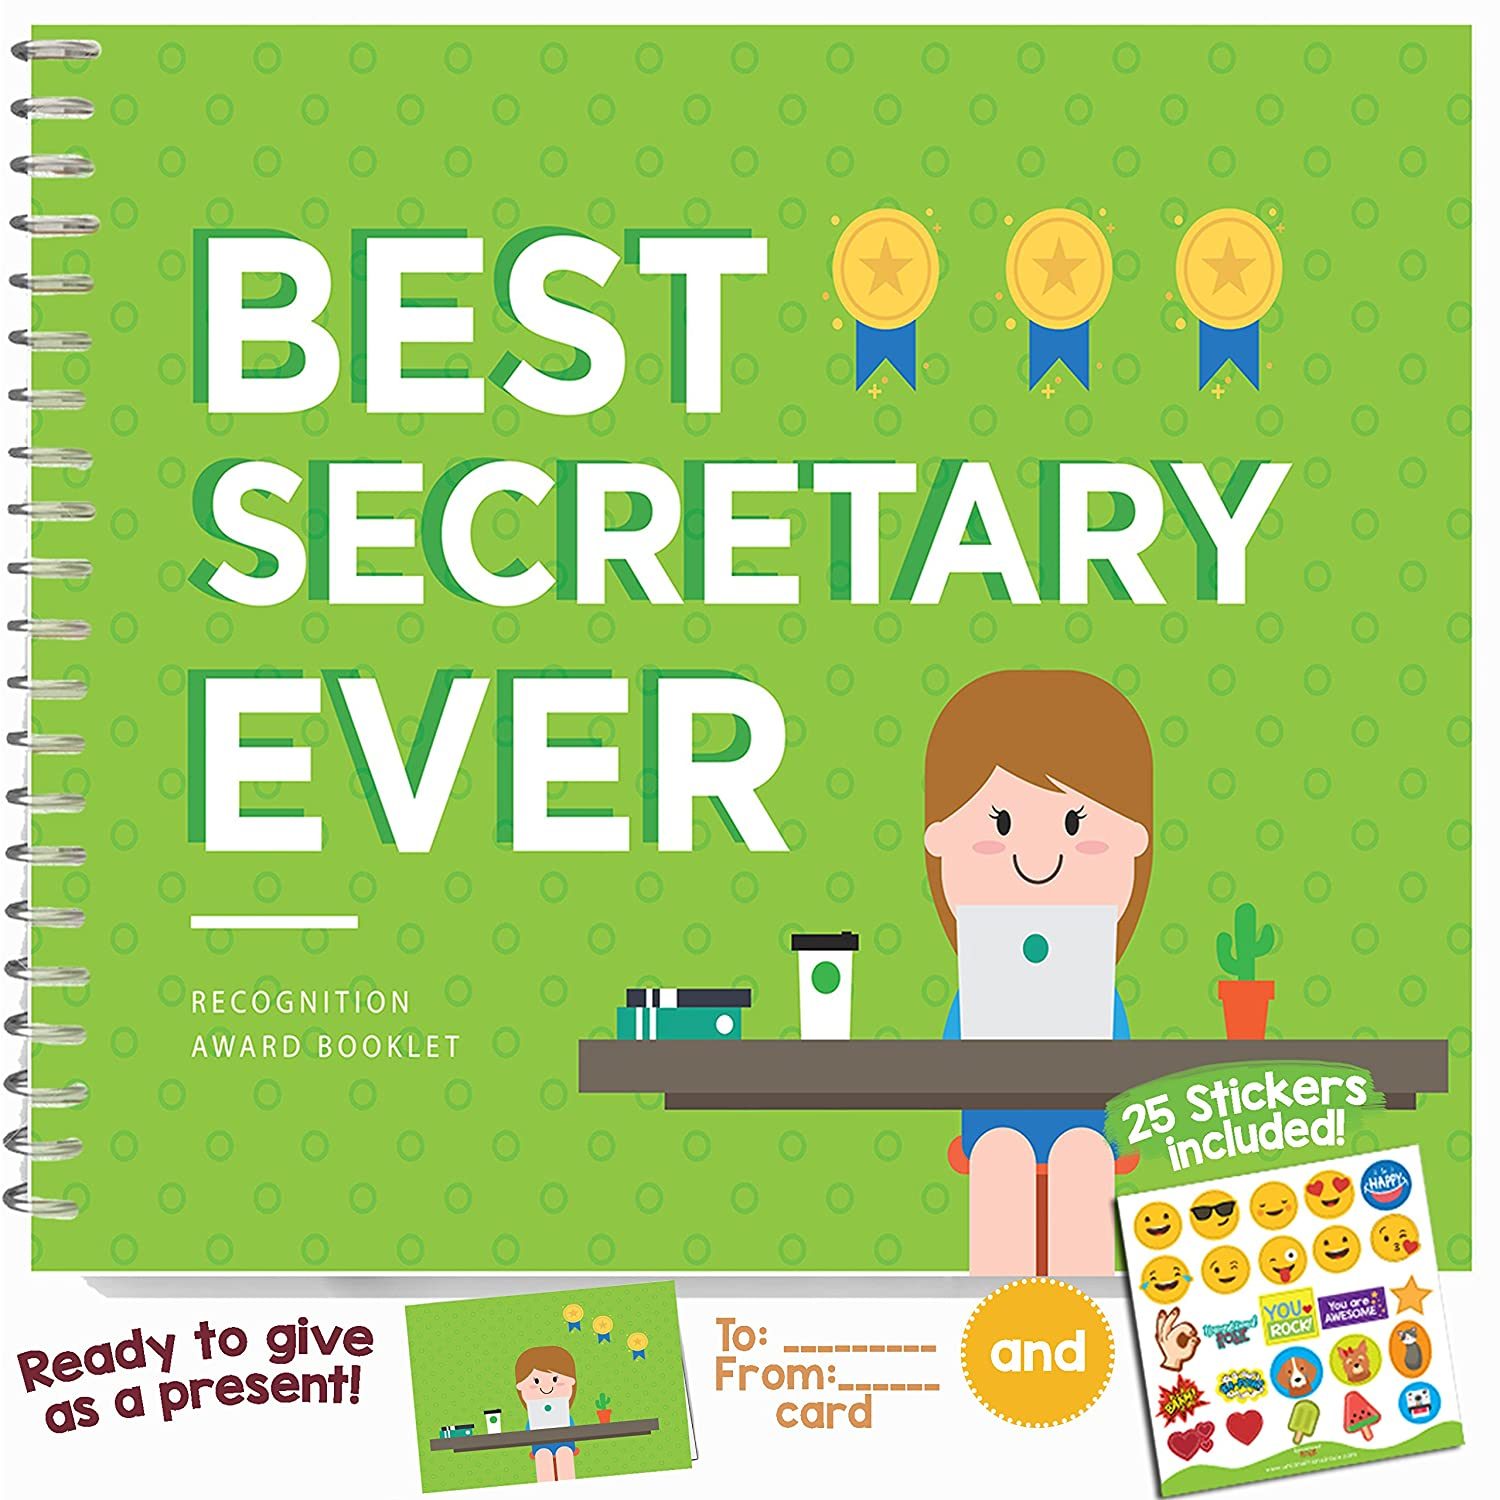 Amazon.com: Best Secretary Ever Edition - This 24-page Booklet Is ...